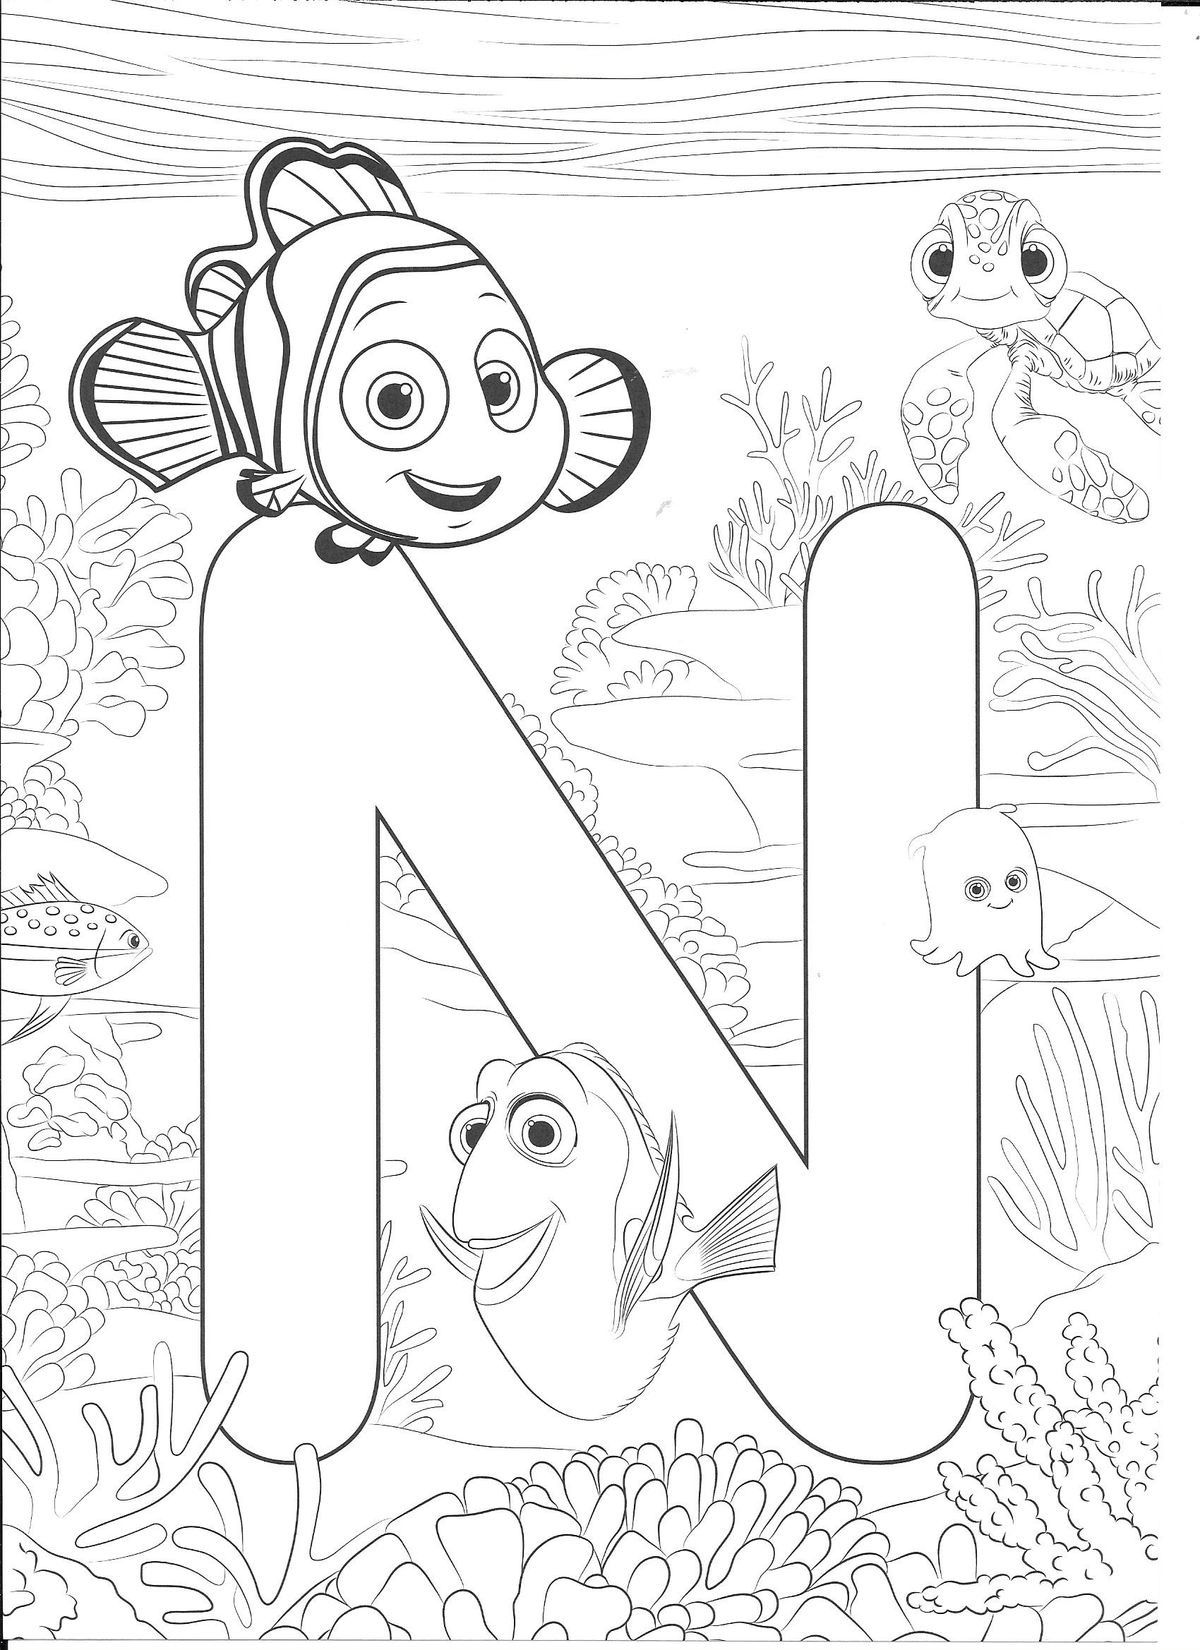 Pin By Mini On Alphabet Coloring Sheets Disney Coloring Sheets Disney Alphabet Abc Coloring Pages